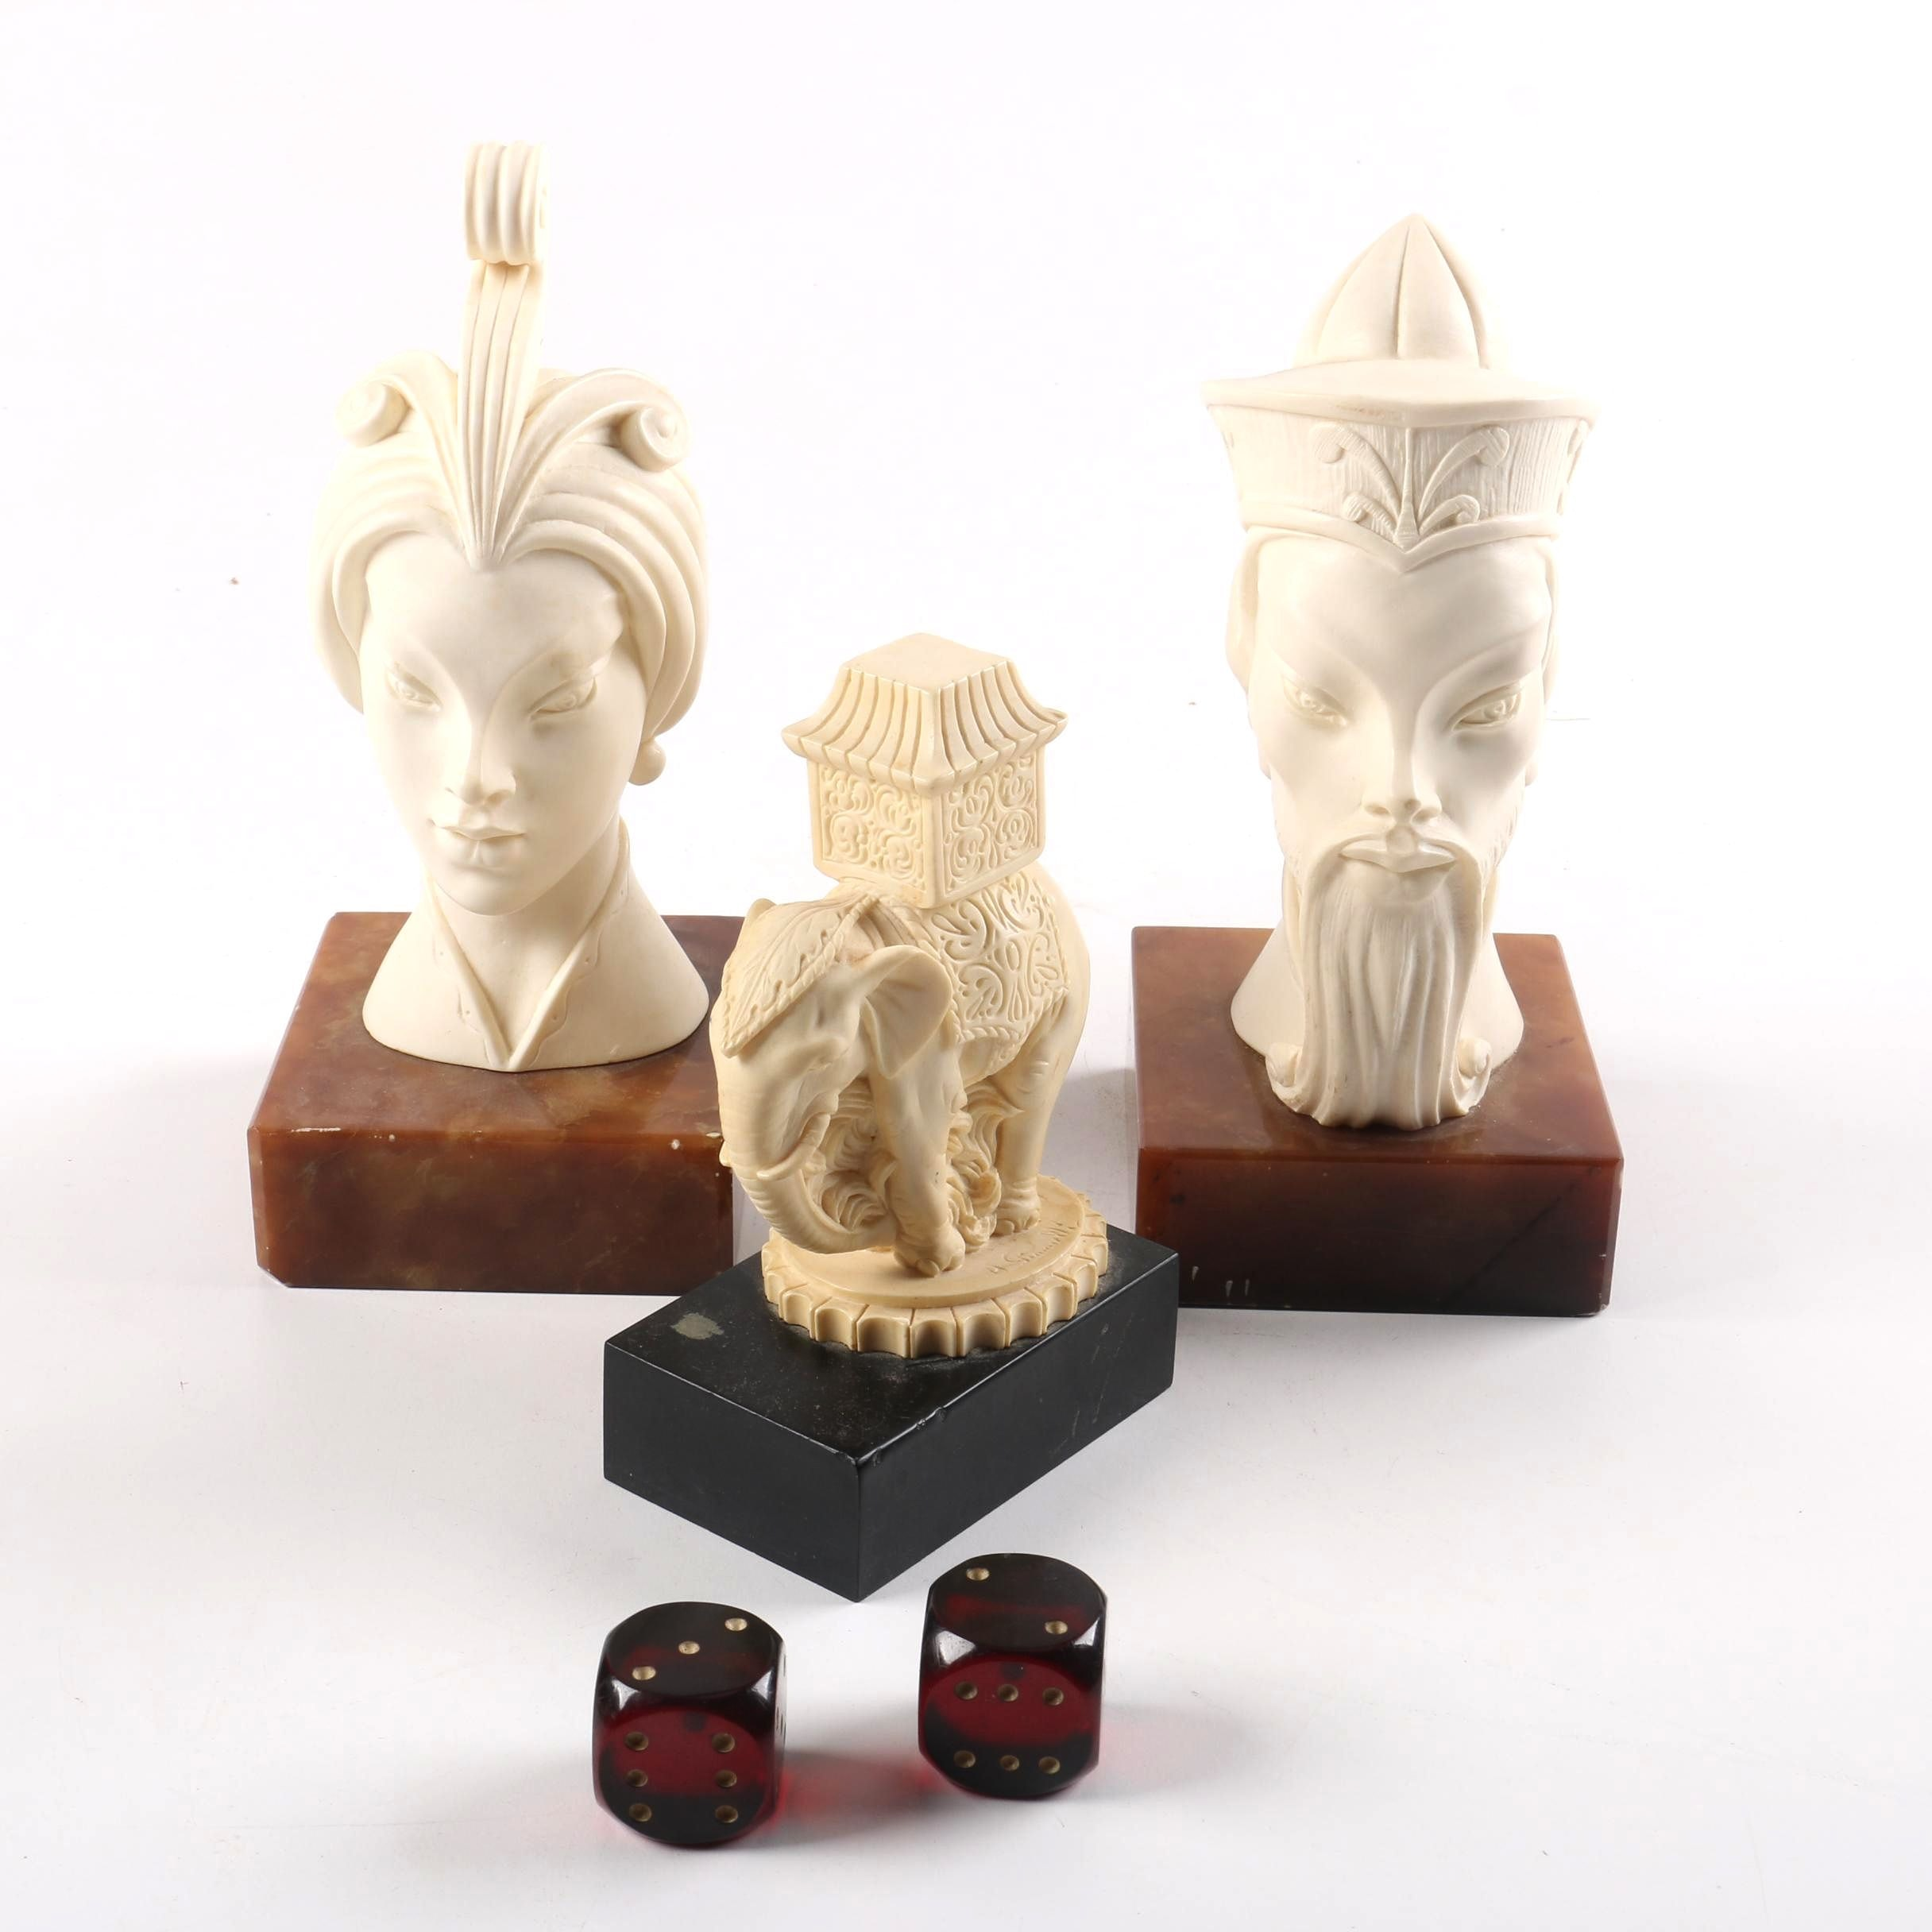 Resin Busts from Italy, Elephant, and Dice